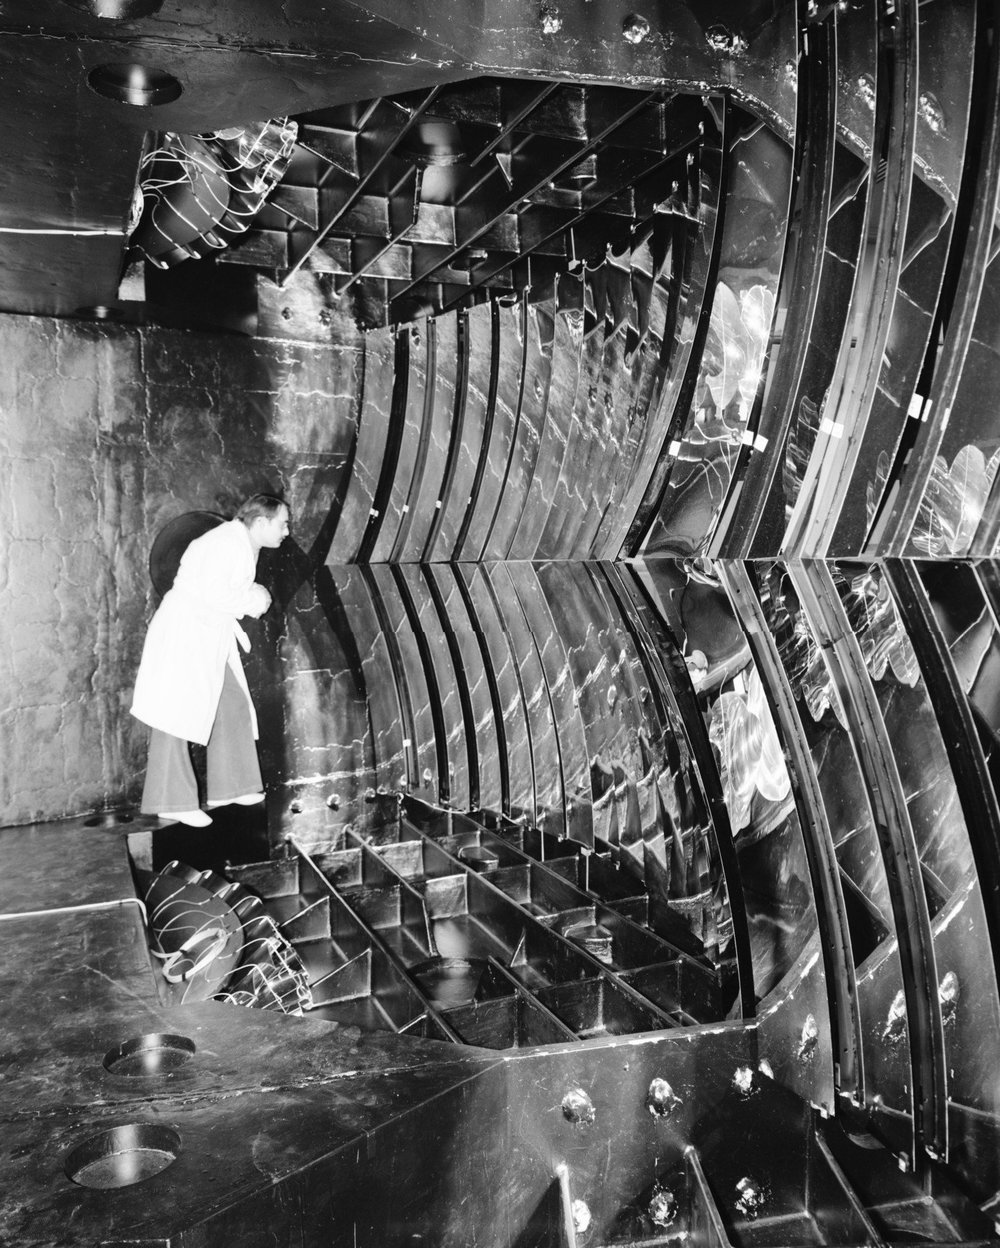 Elliptical mirrors of the large Cherenkov counter at CERN